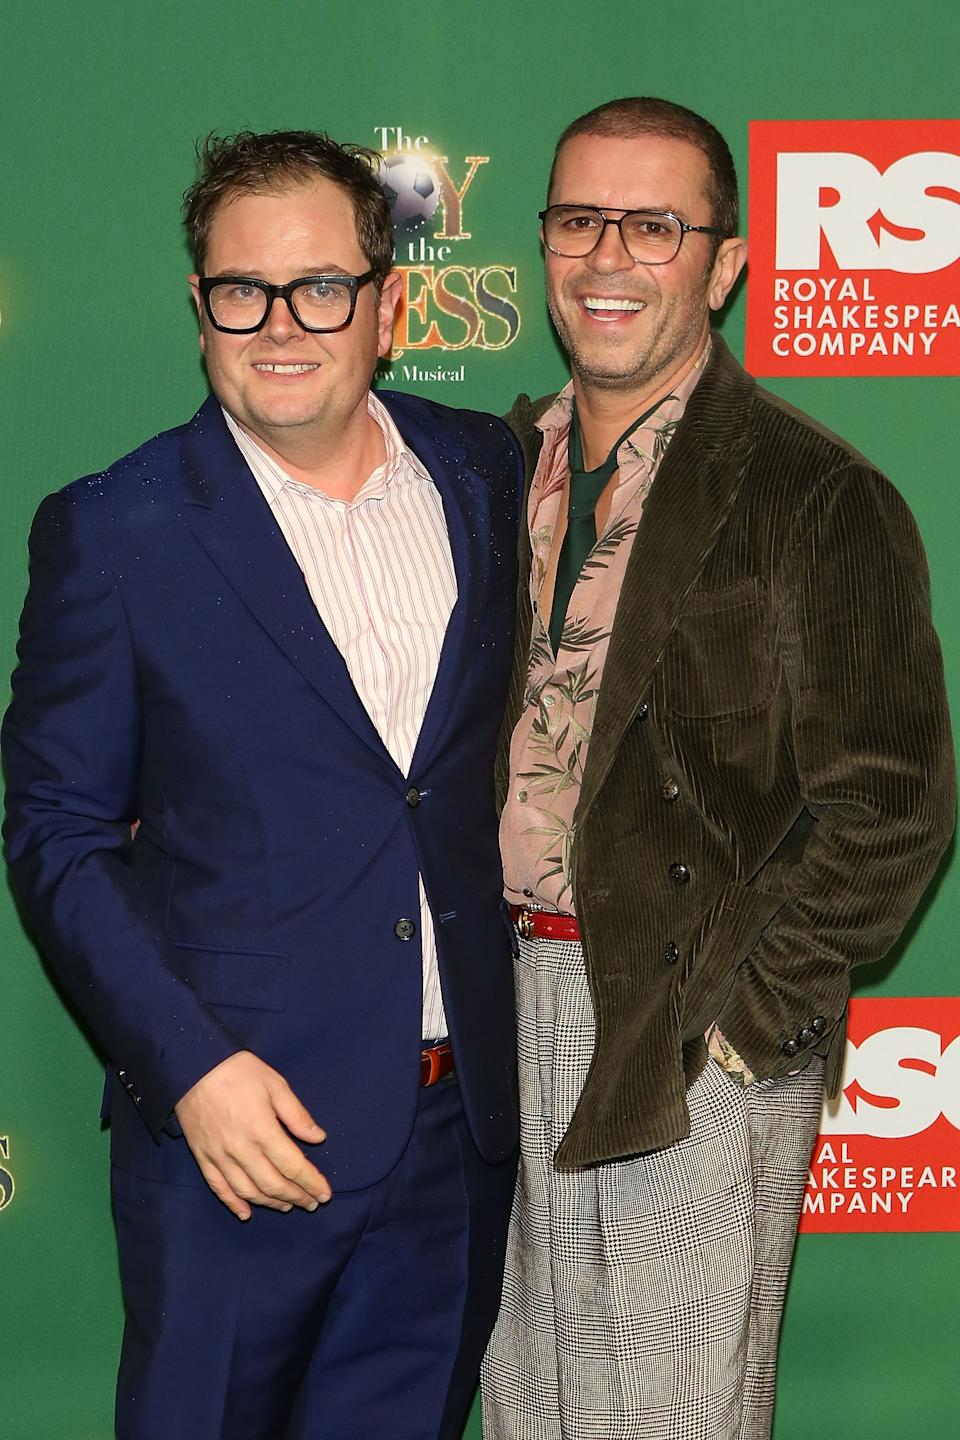 """STRATFORD-UPON-AVON, ENGLAND - NOVEMBER 28: (L-R) Alan Carr and Paul Drayton attend the press night performance of """"The Boy In The Dress"""" at Royal Shakespeare Theatre on November 28, 2019 in Stratford-upon-Avon, England. (Photo by David M. Benett/Dave Benett/Getty Images)"""